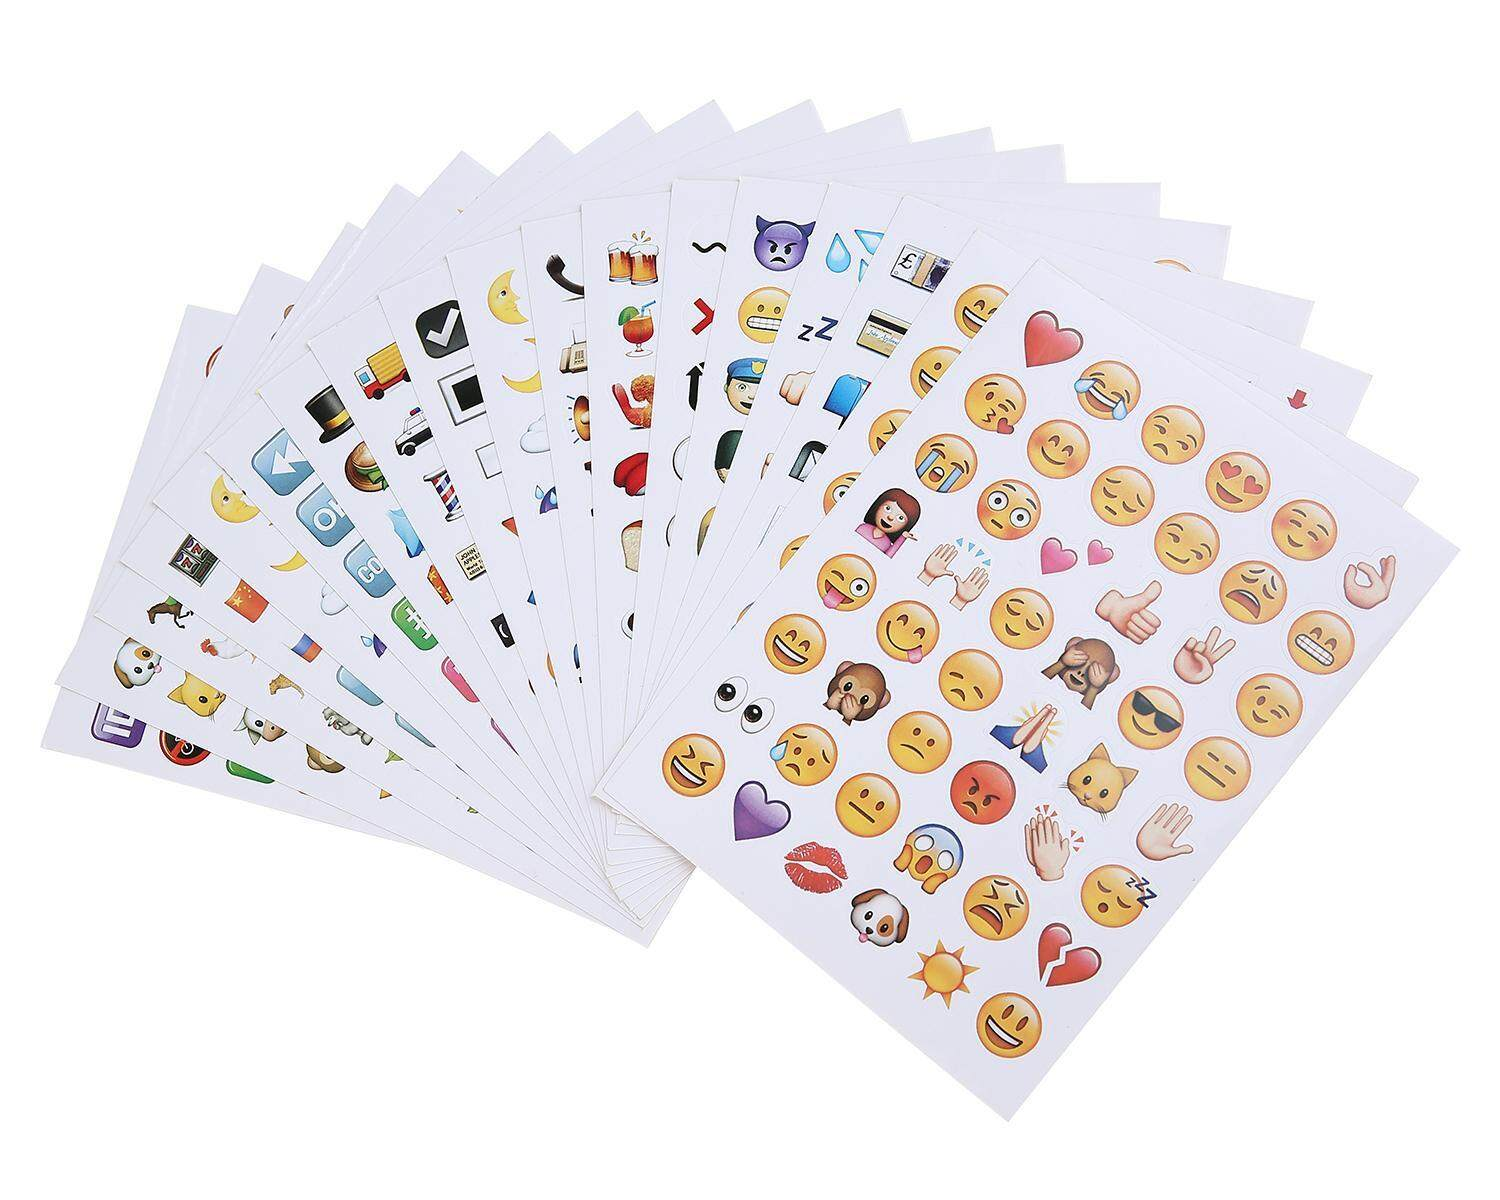 qooyonq Emoji Stickers 19 Sheets 912 With Happy Faces Kid Stickers For Phone Facebook Twitter - intl